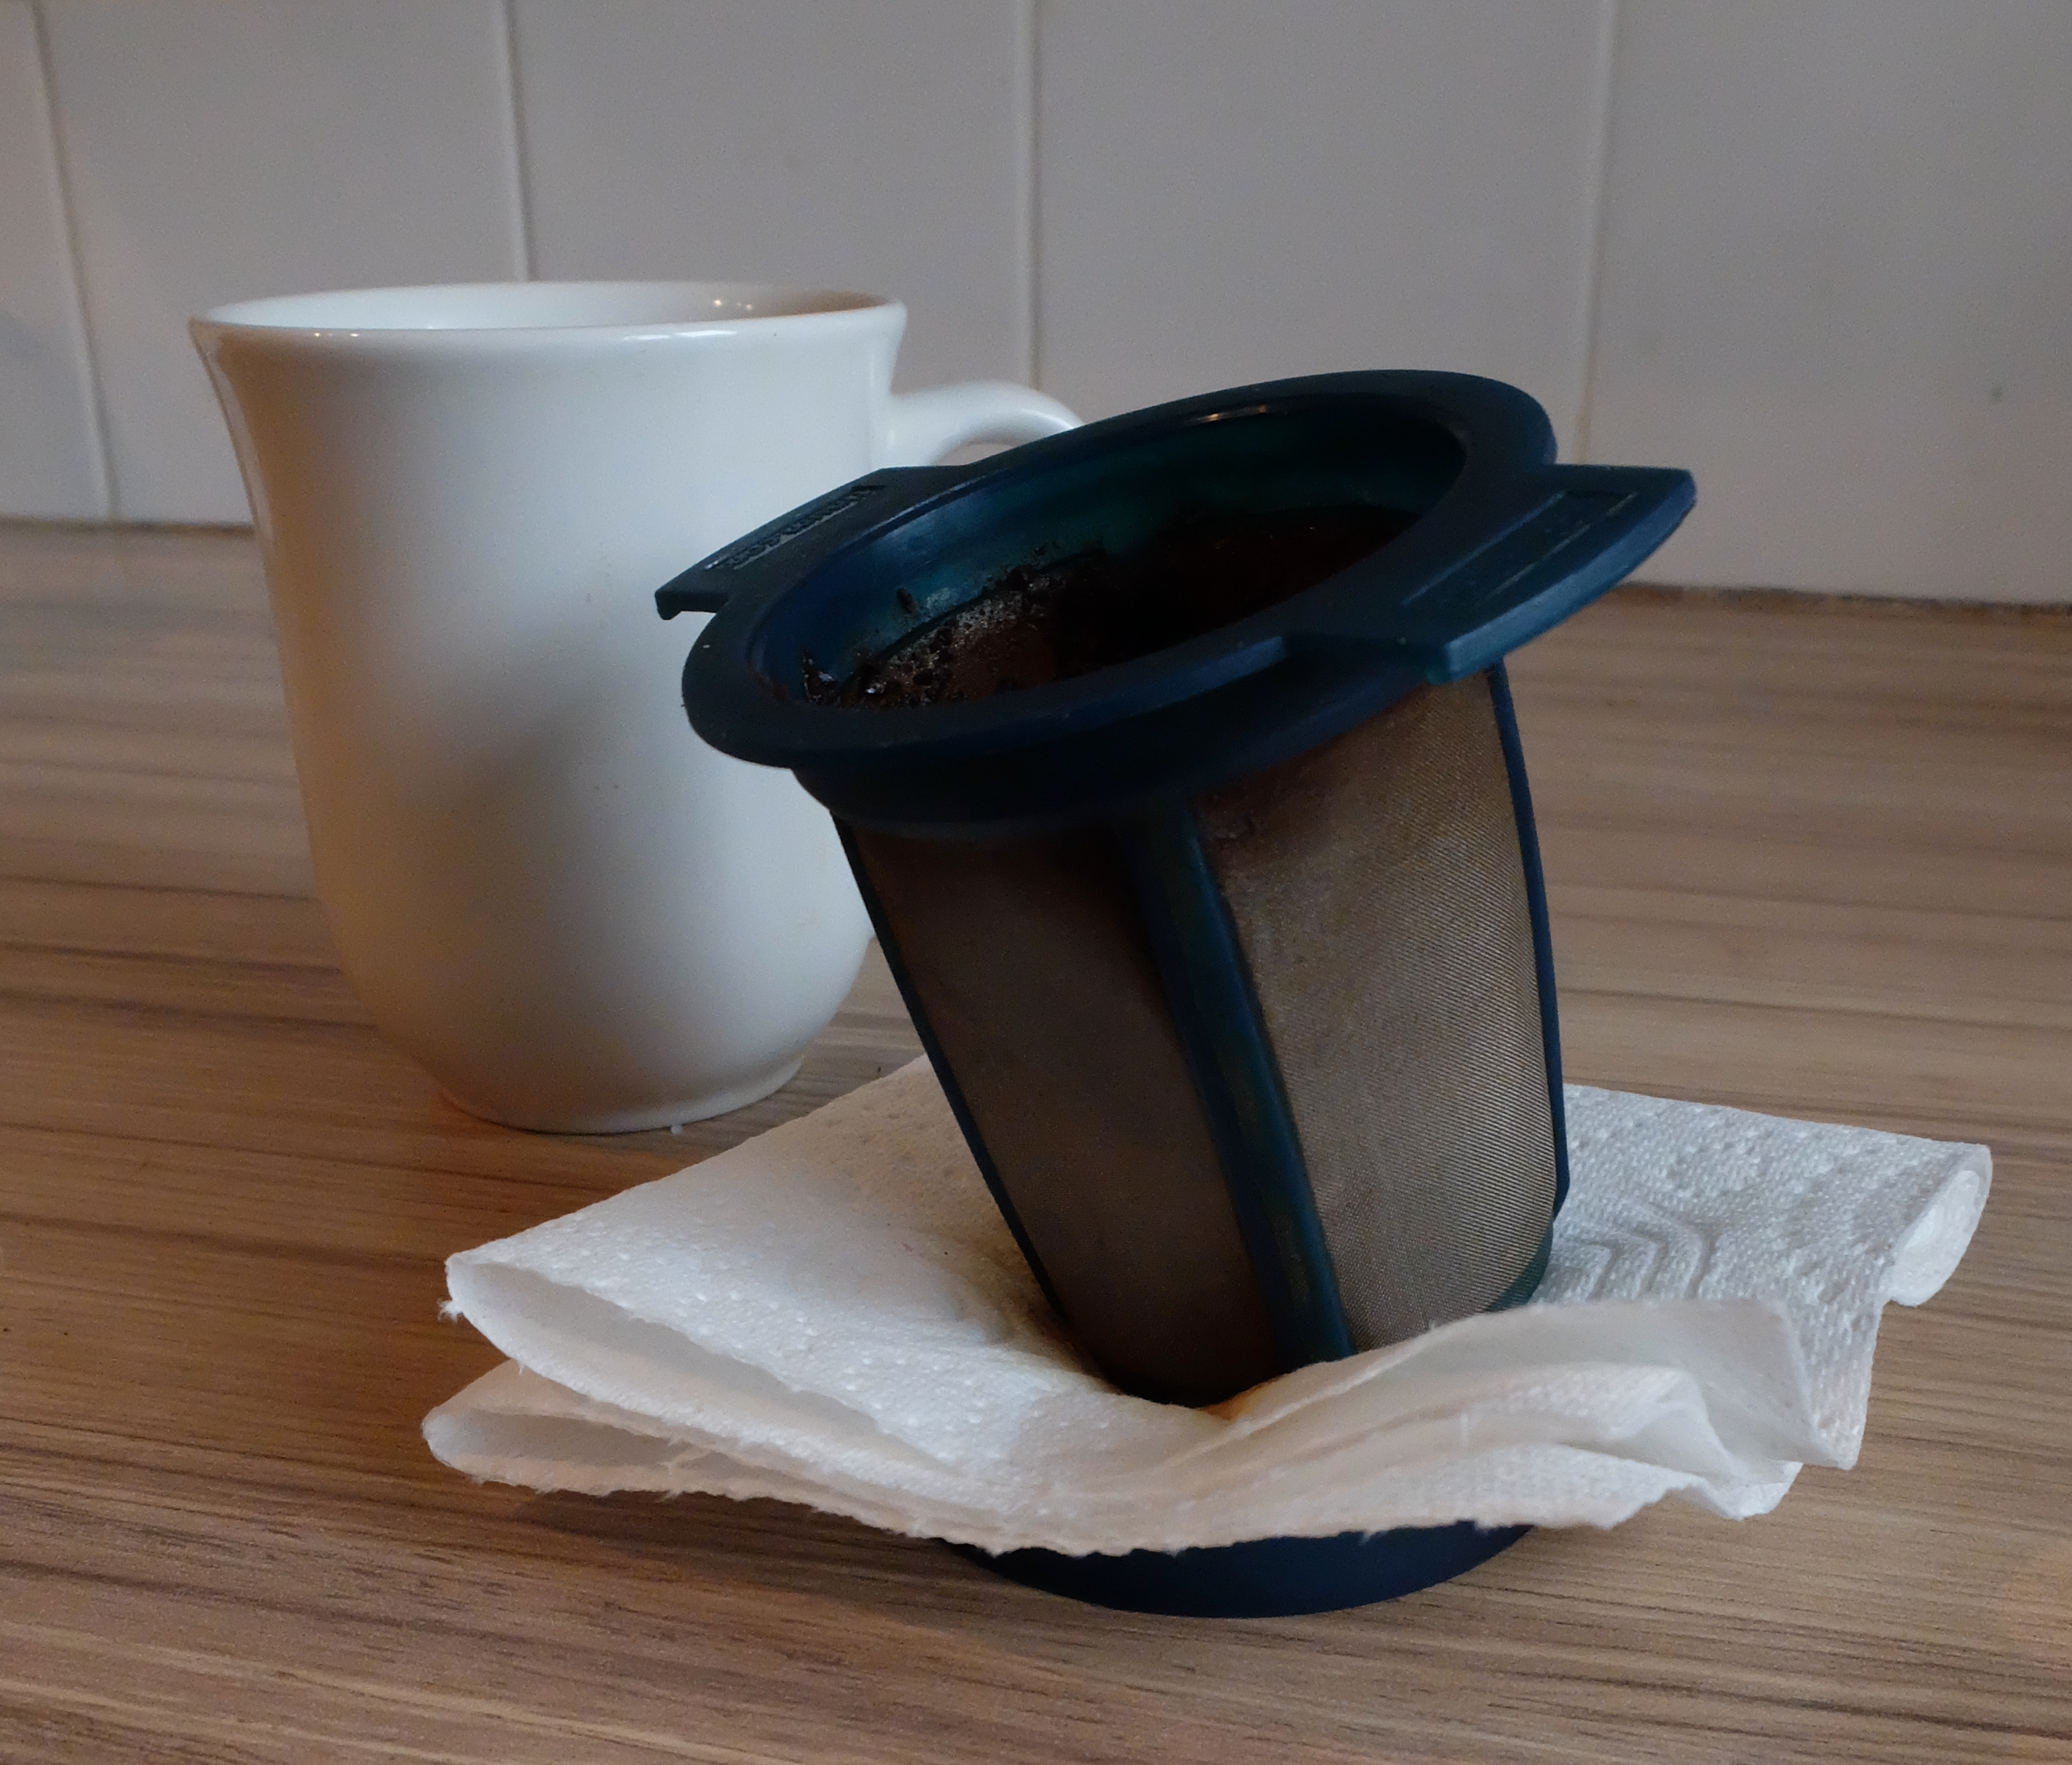 8 - Put the brew basket to drain on the kitchen paper on the upturned lid.